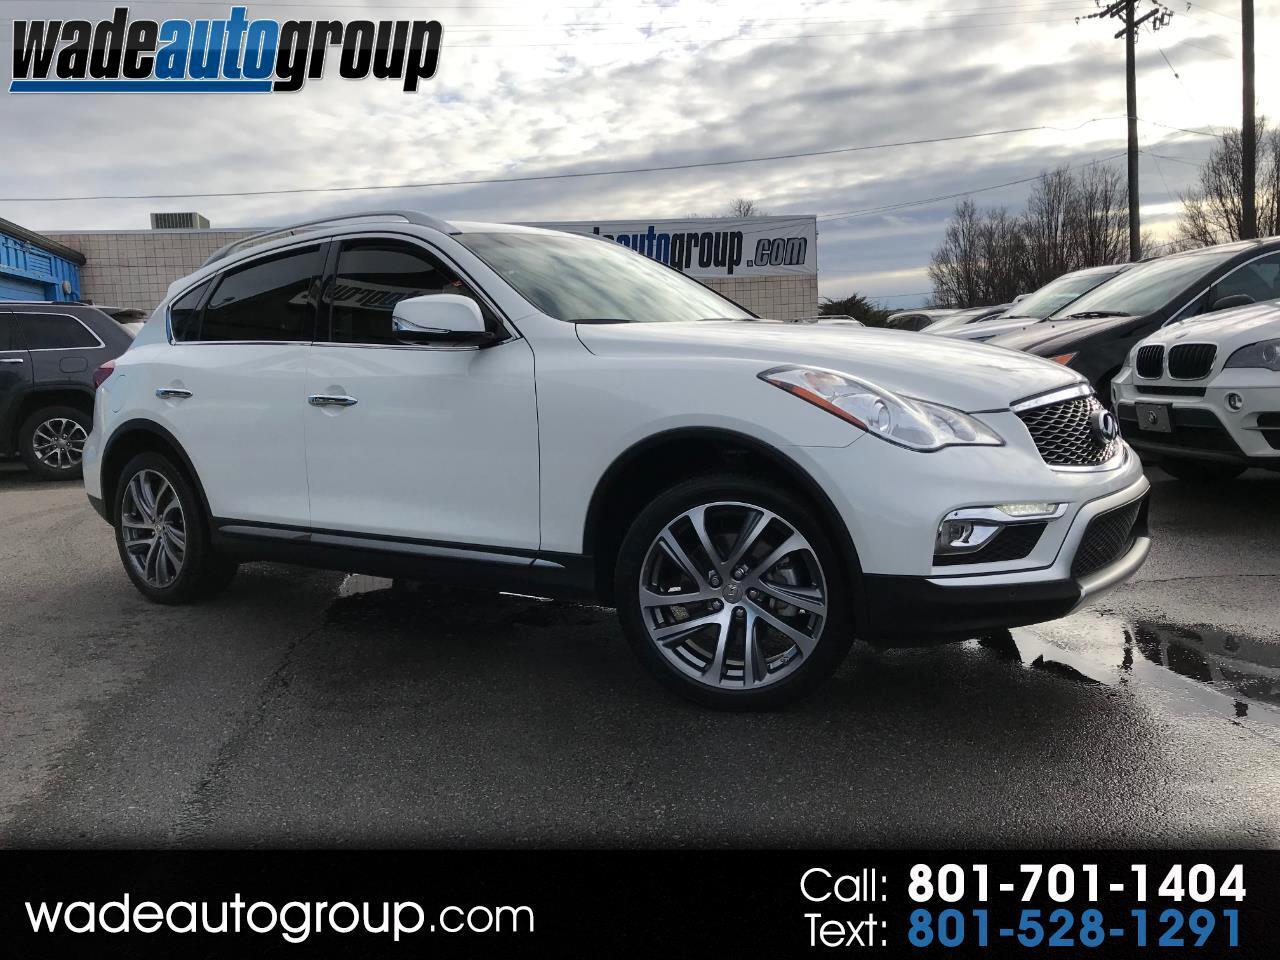 2017 Infiniti QX50 Journey AWD